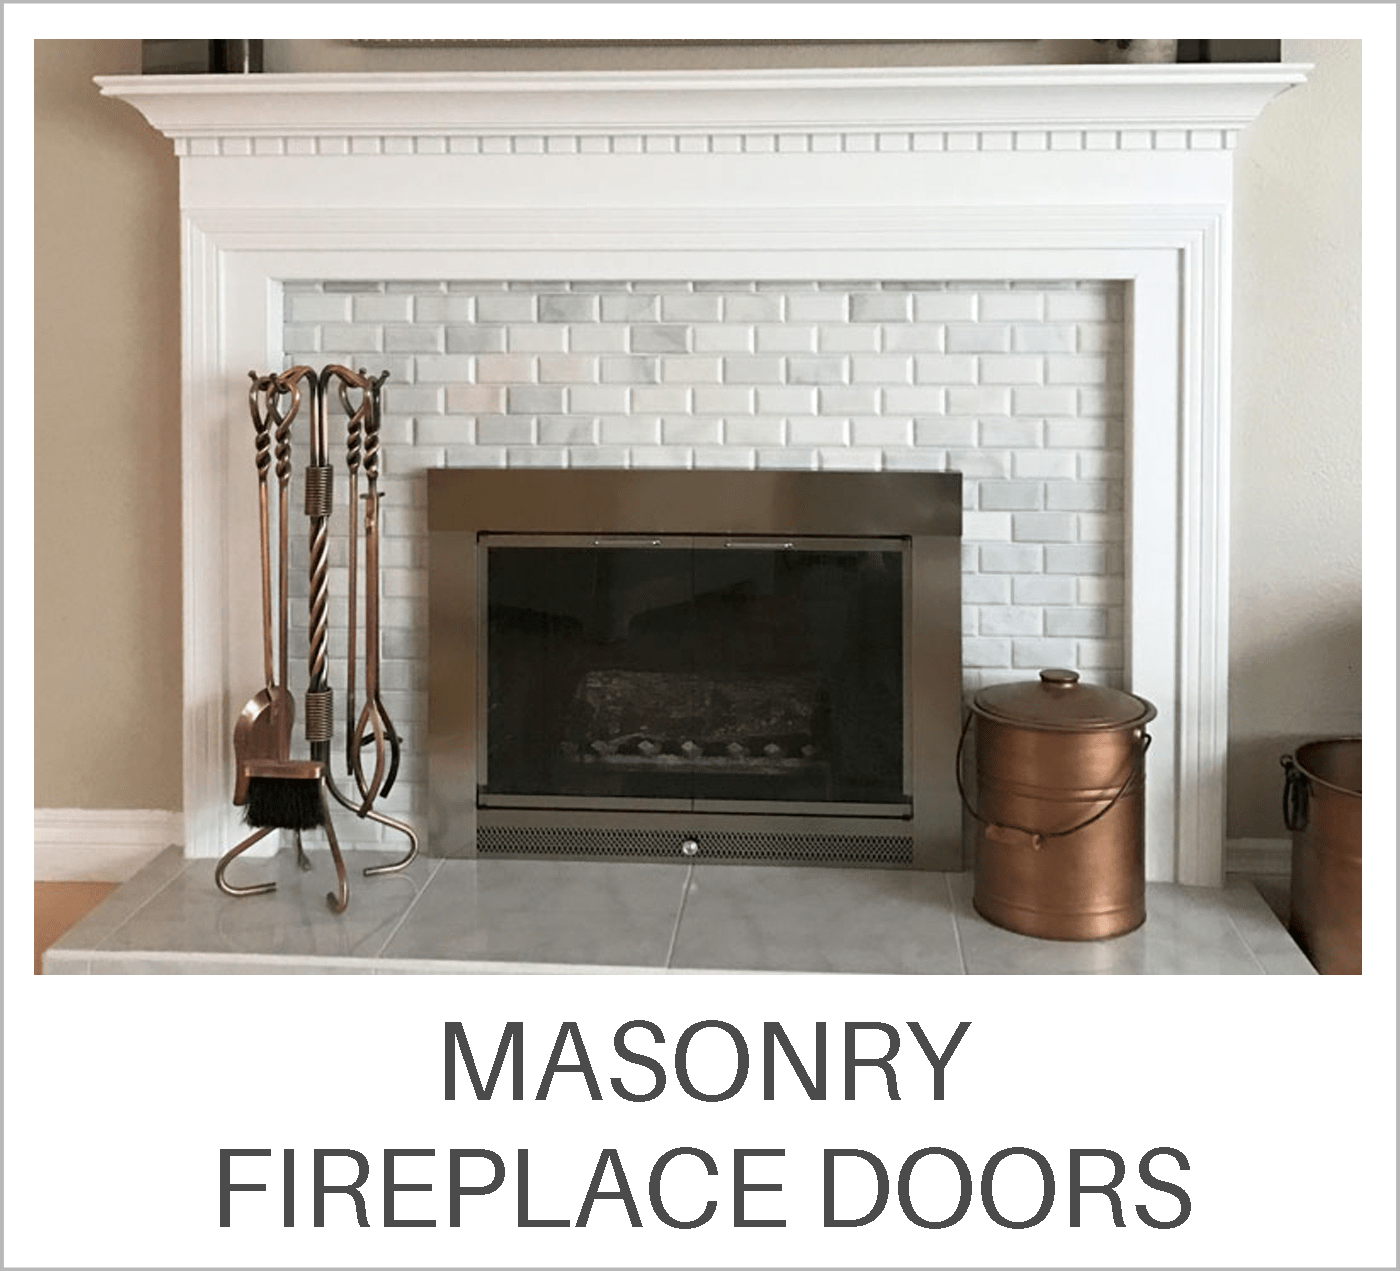 Masonry Fireplace Doors Learning Center